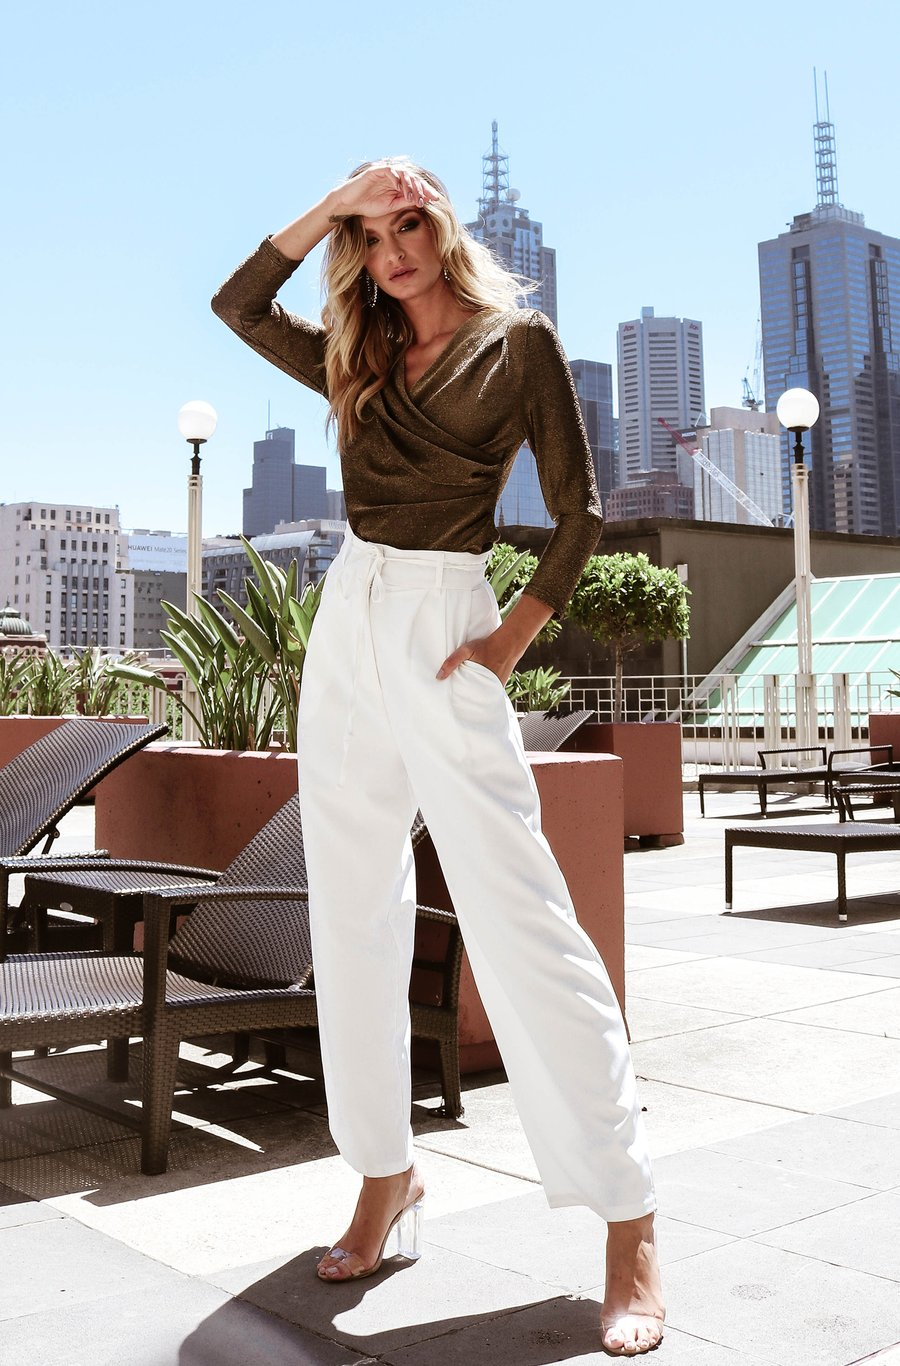 Polly Wide Leg Pant for $89.95